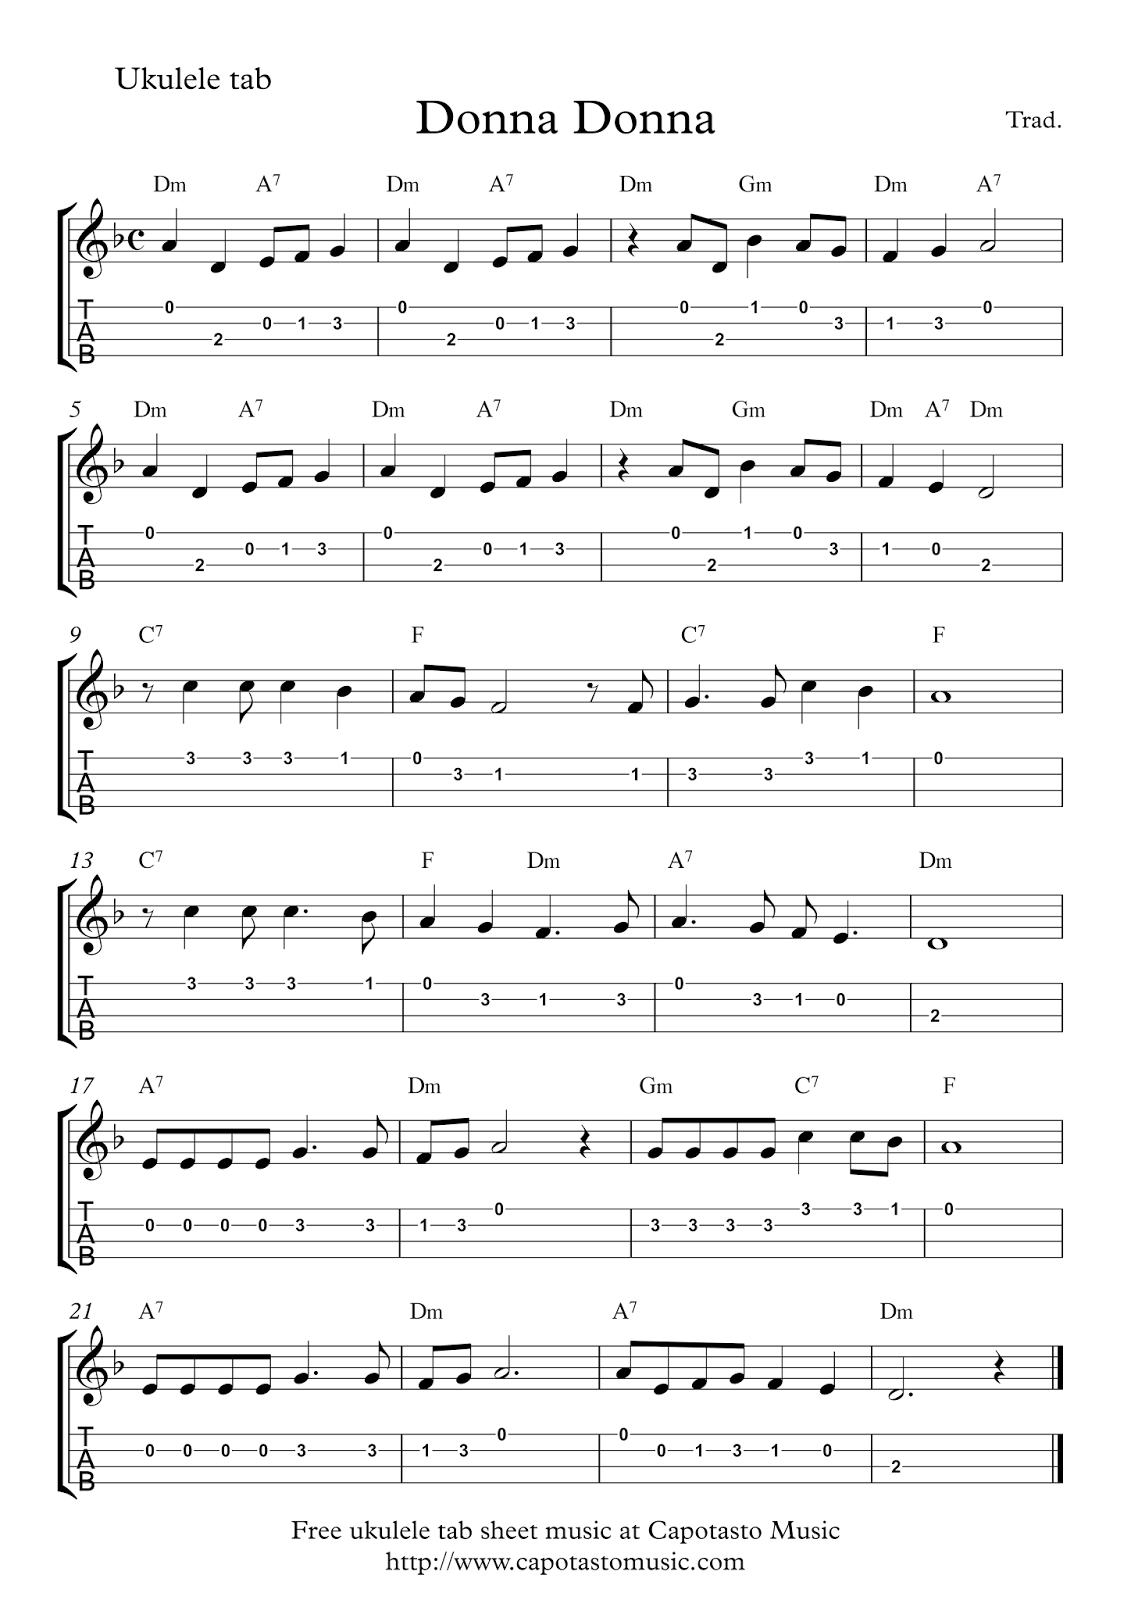 Donna Donna Free Easy Ukulele Tablature Sheet Music